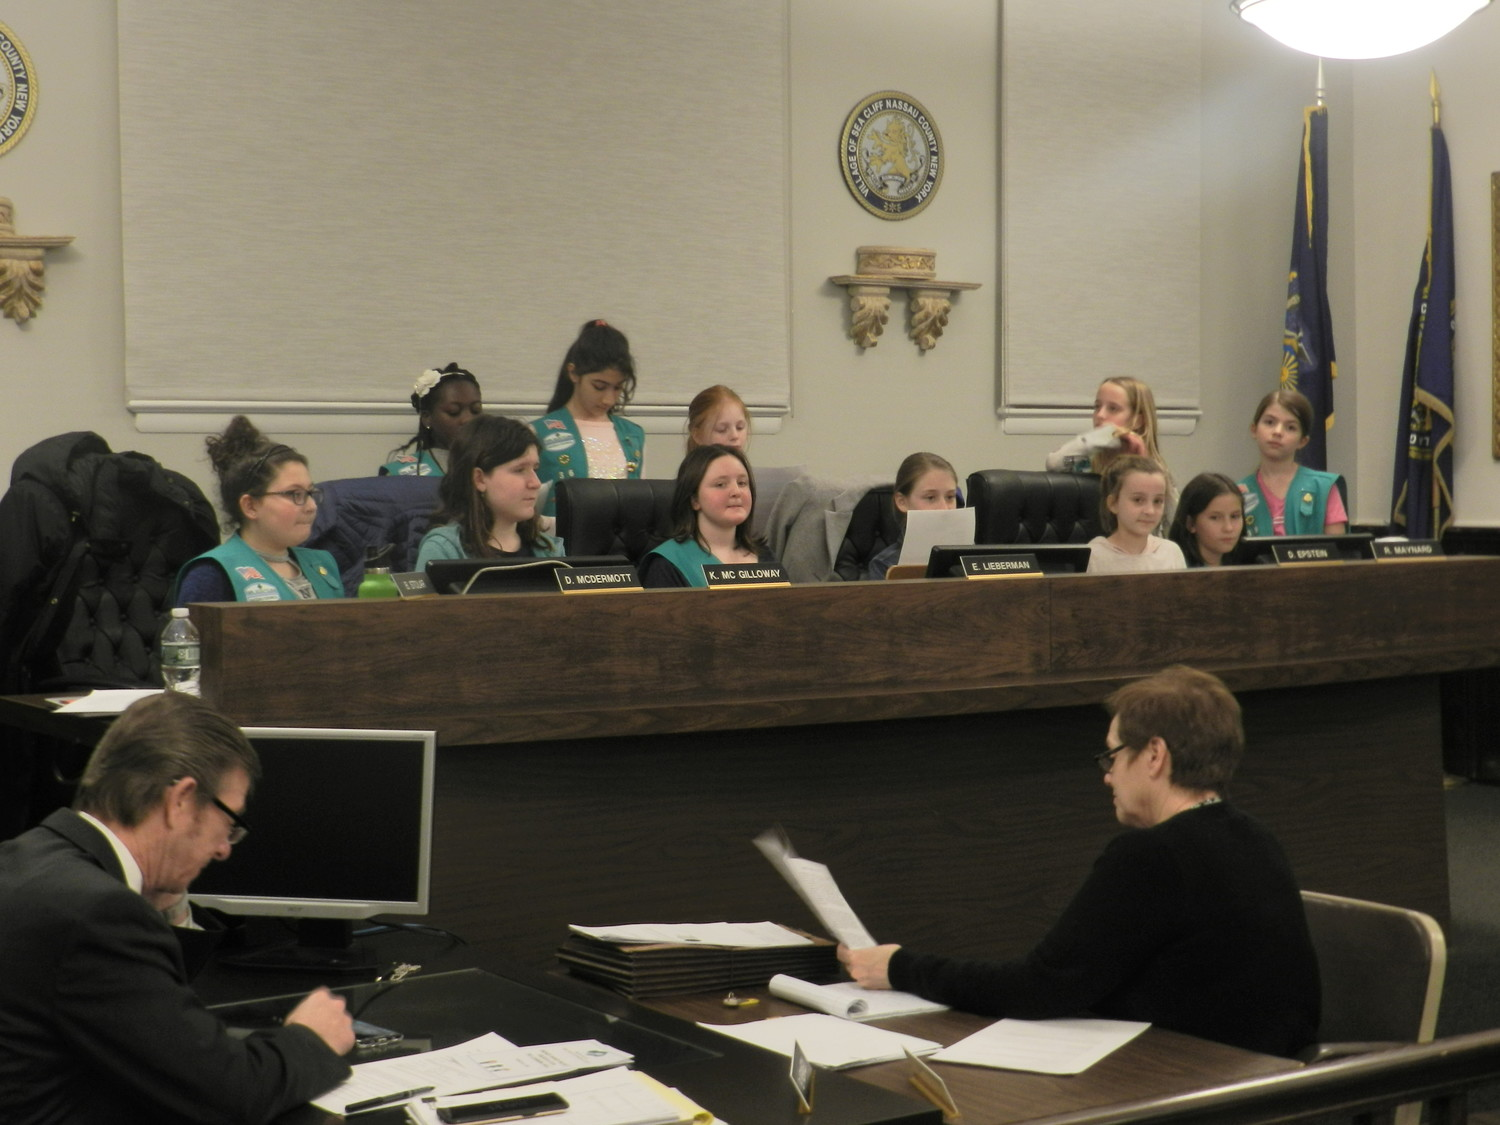 Girl Scout Troops 64 and 36 took over the board to present their proposal to paint a mural at Sea Cliff's beach pavilion.